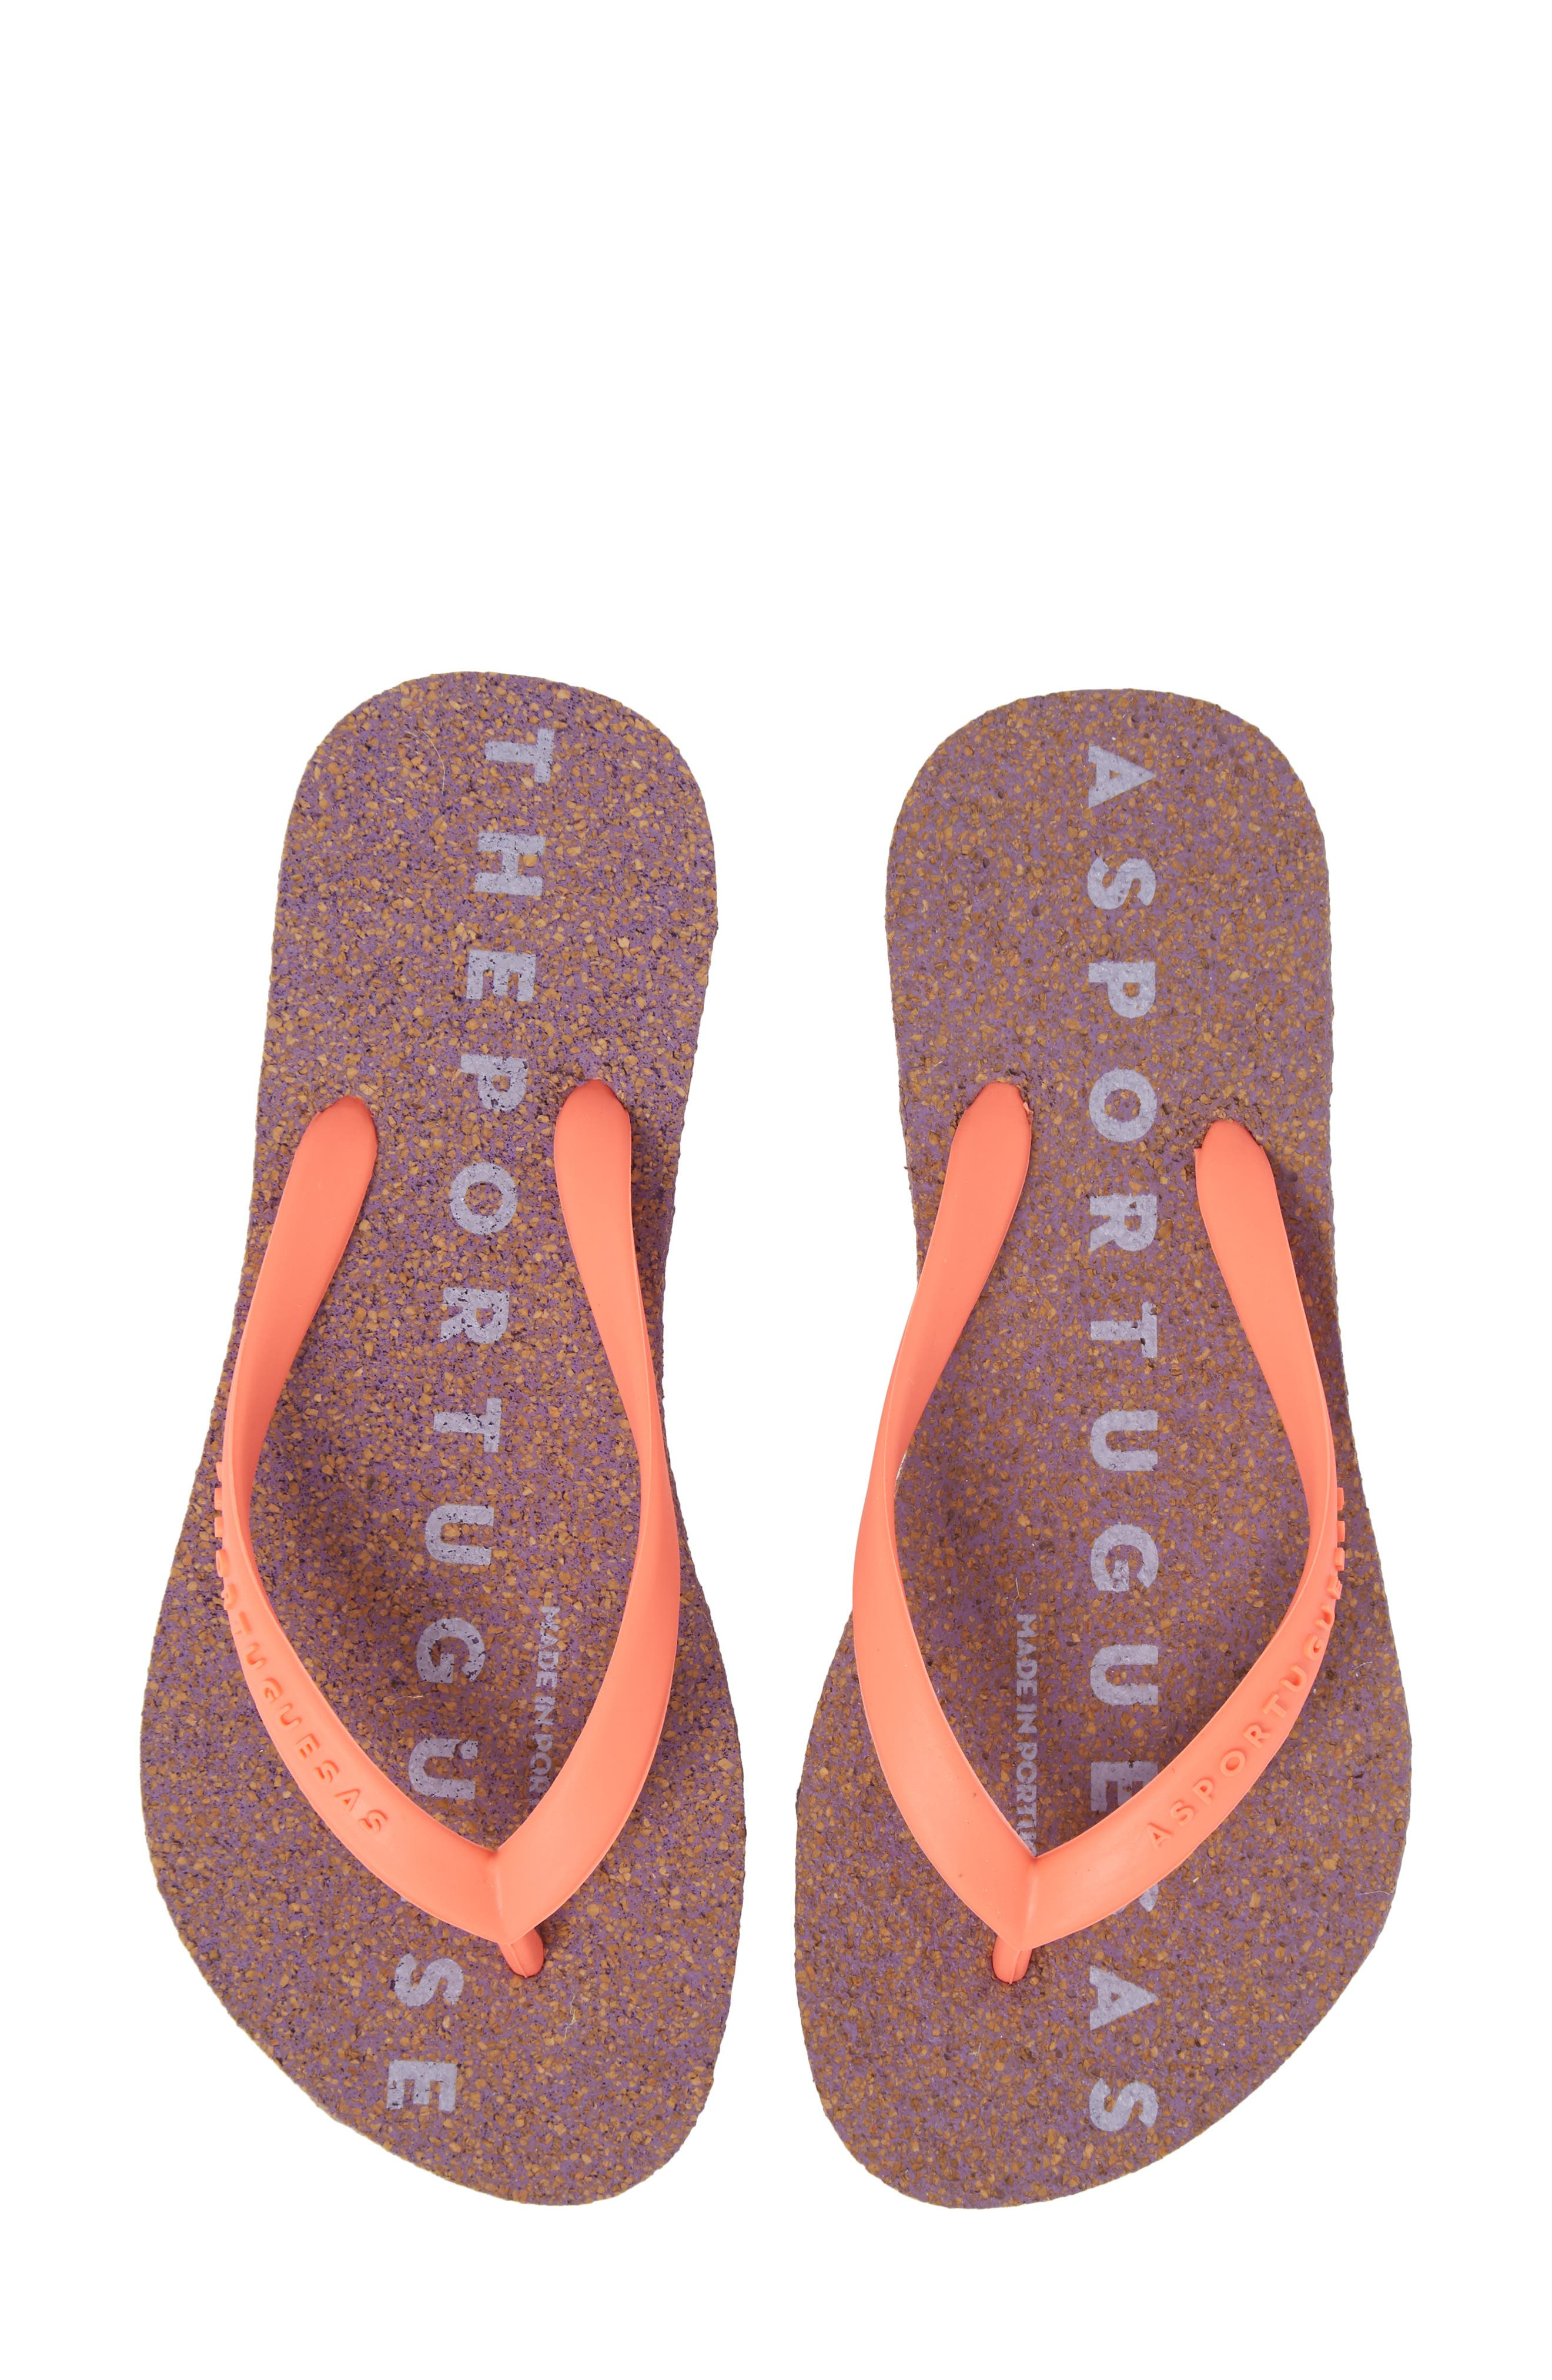 Base 000 Flip Flop,                             Main thumbnail 1, color,                             CORAL/ PURPLE FABRIC